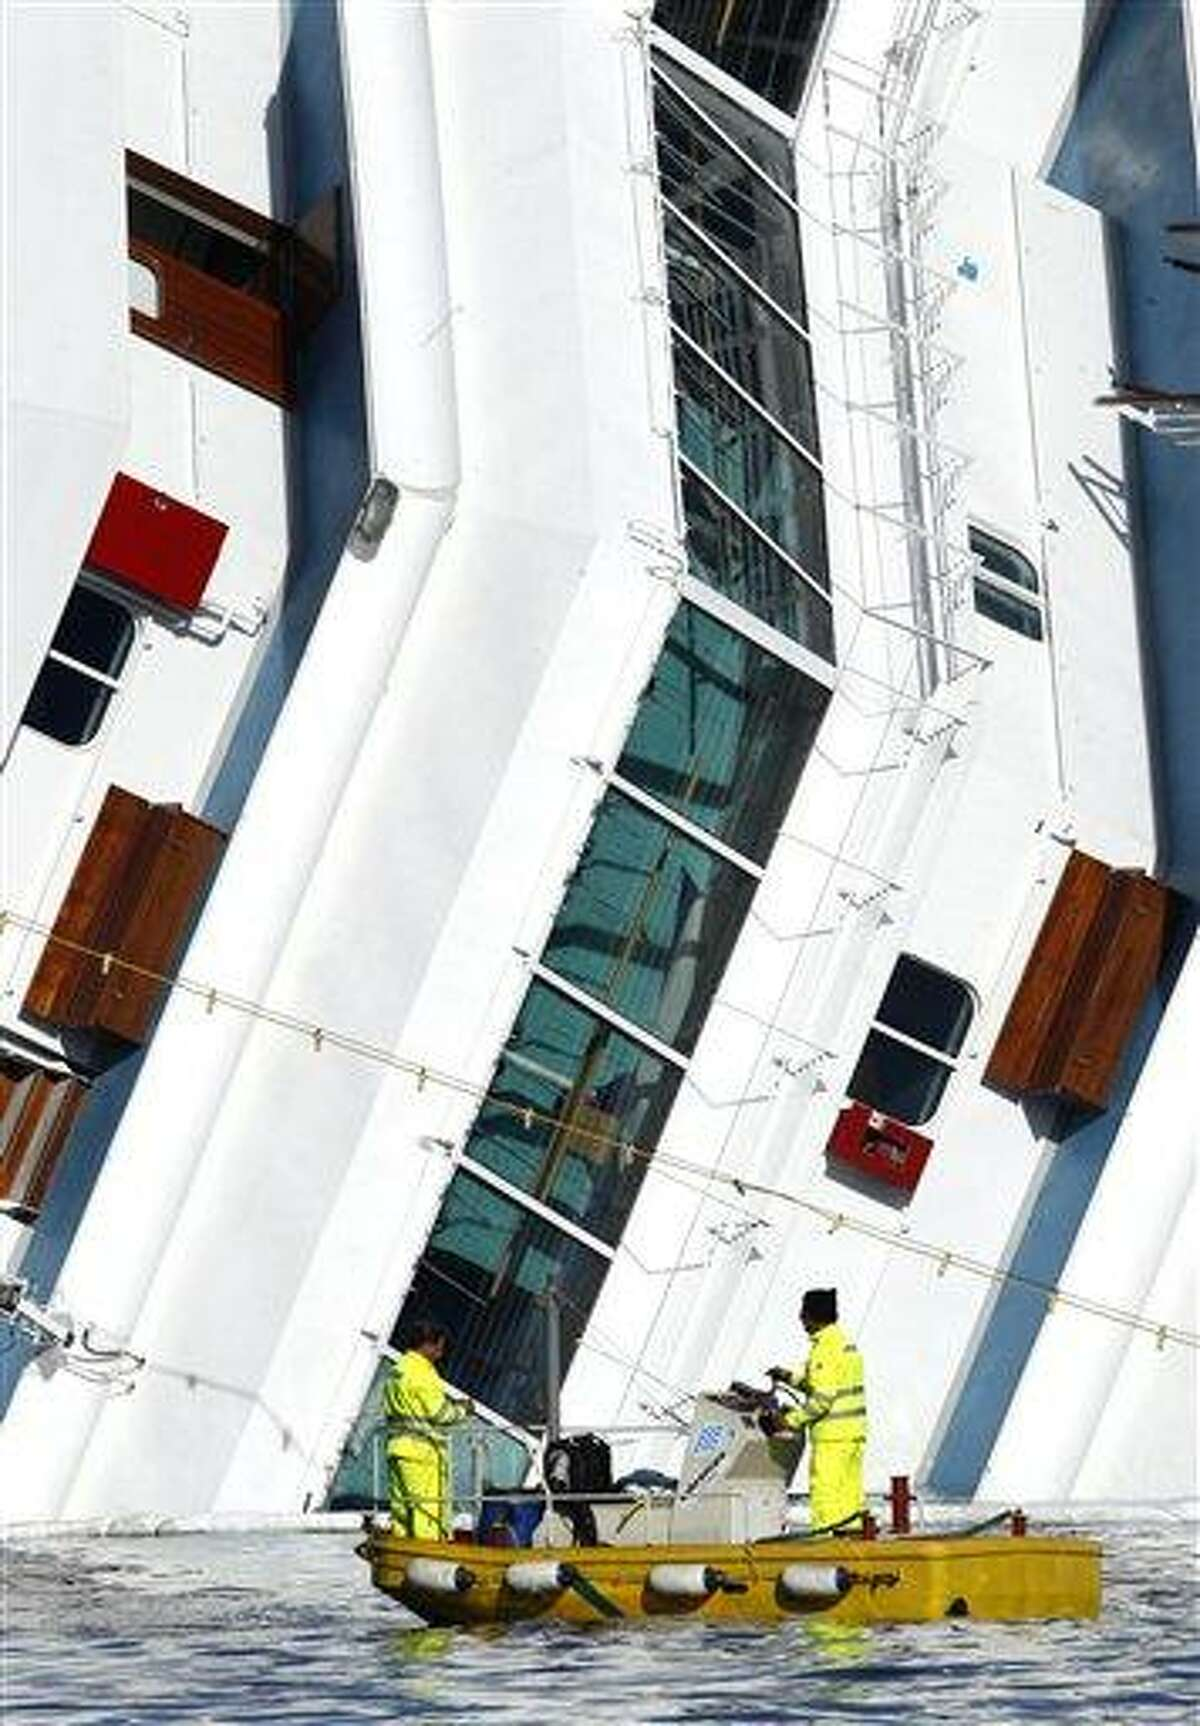 Fuel spill experts work around the grounded cruise ship Costa Concordia off the Tuscan island of Giglio, Italy, Saturday. The search resumed for 21 missing passengers. Associated Press